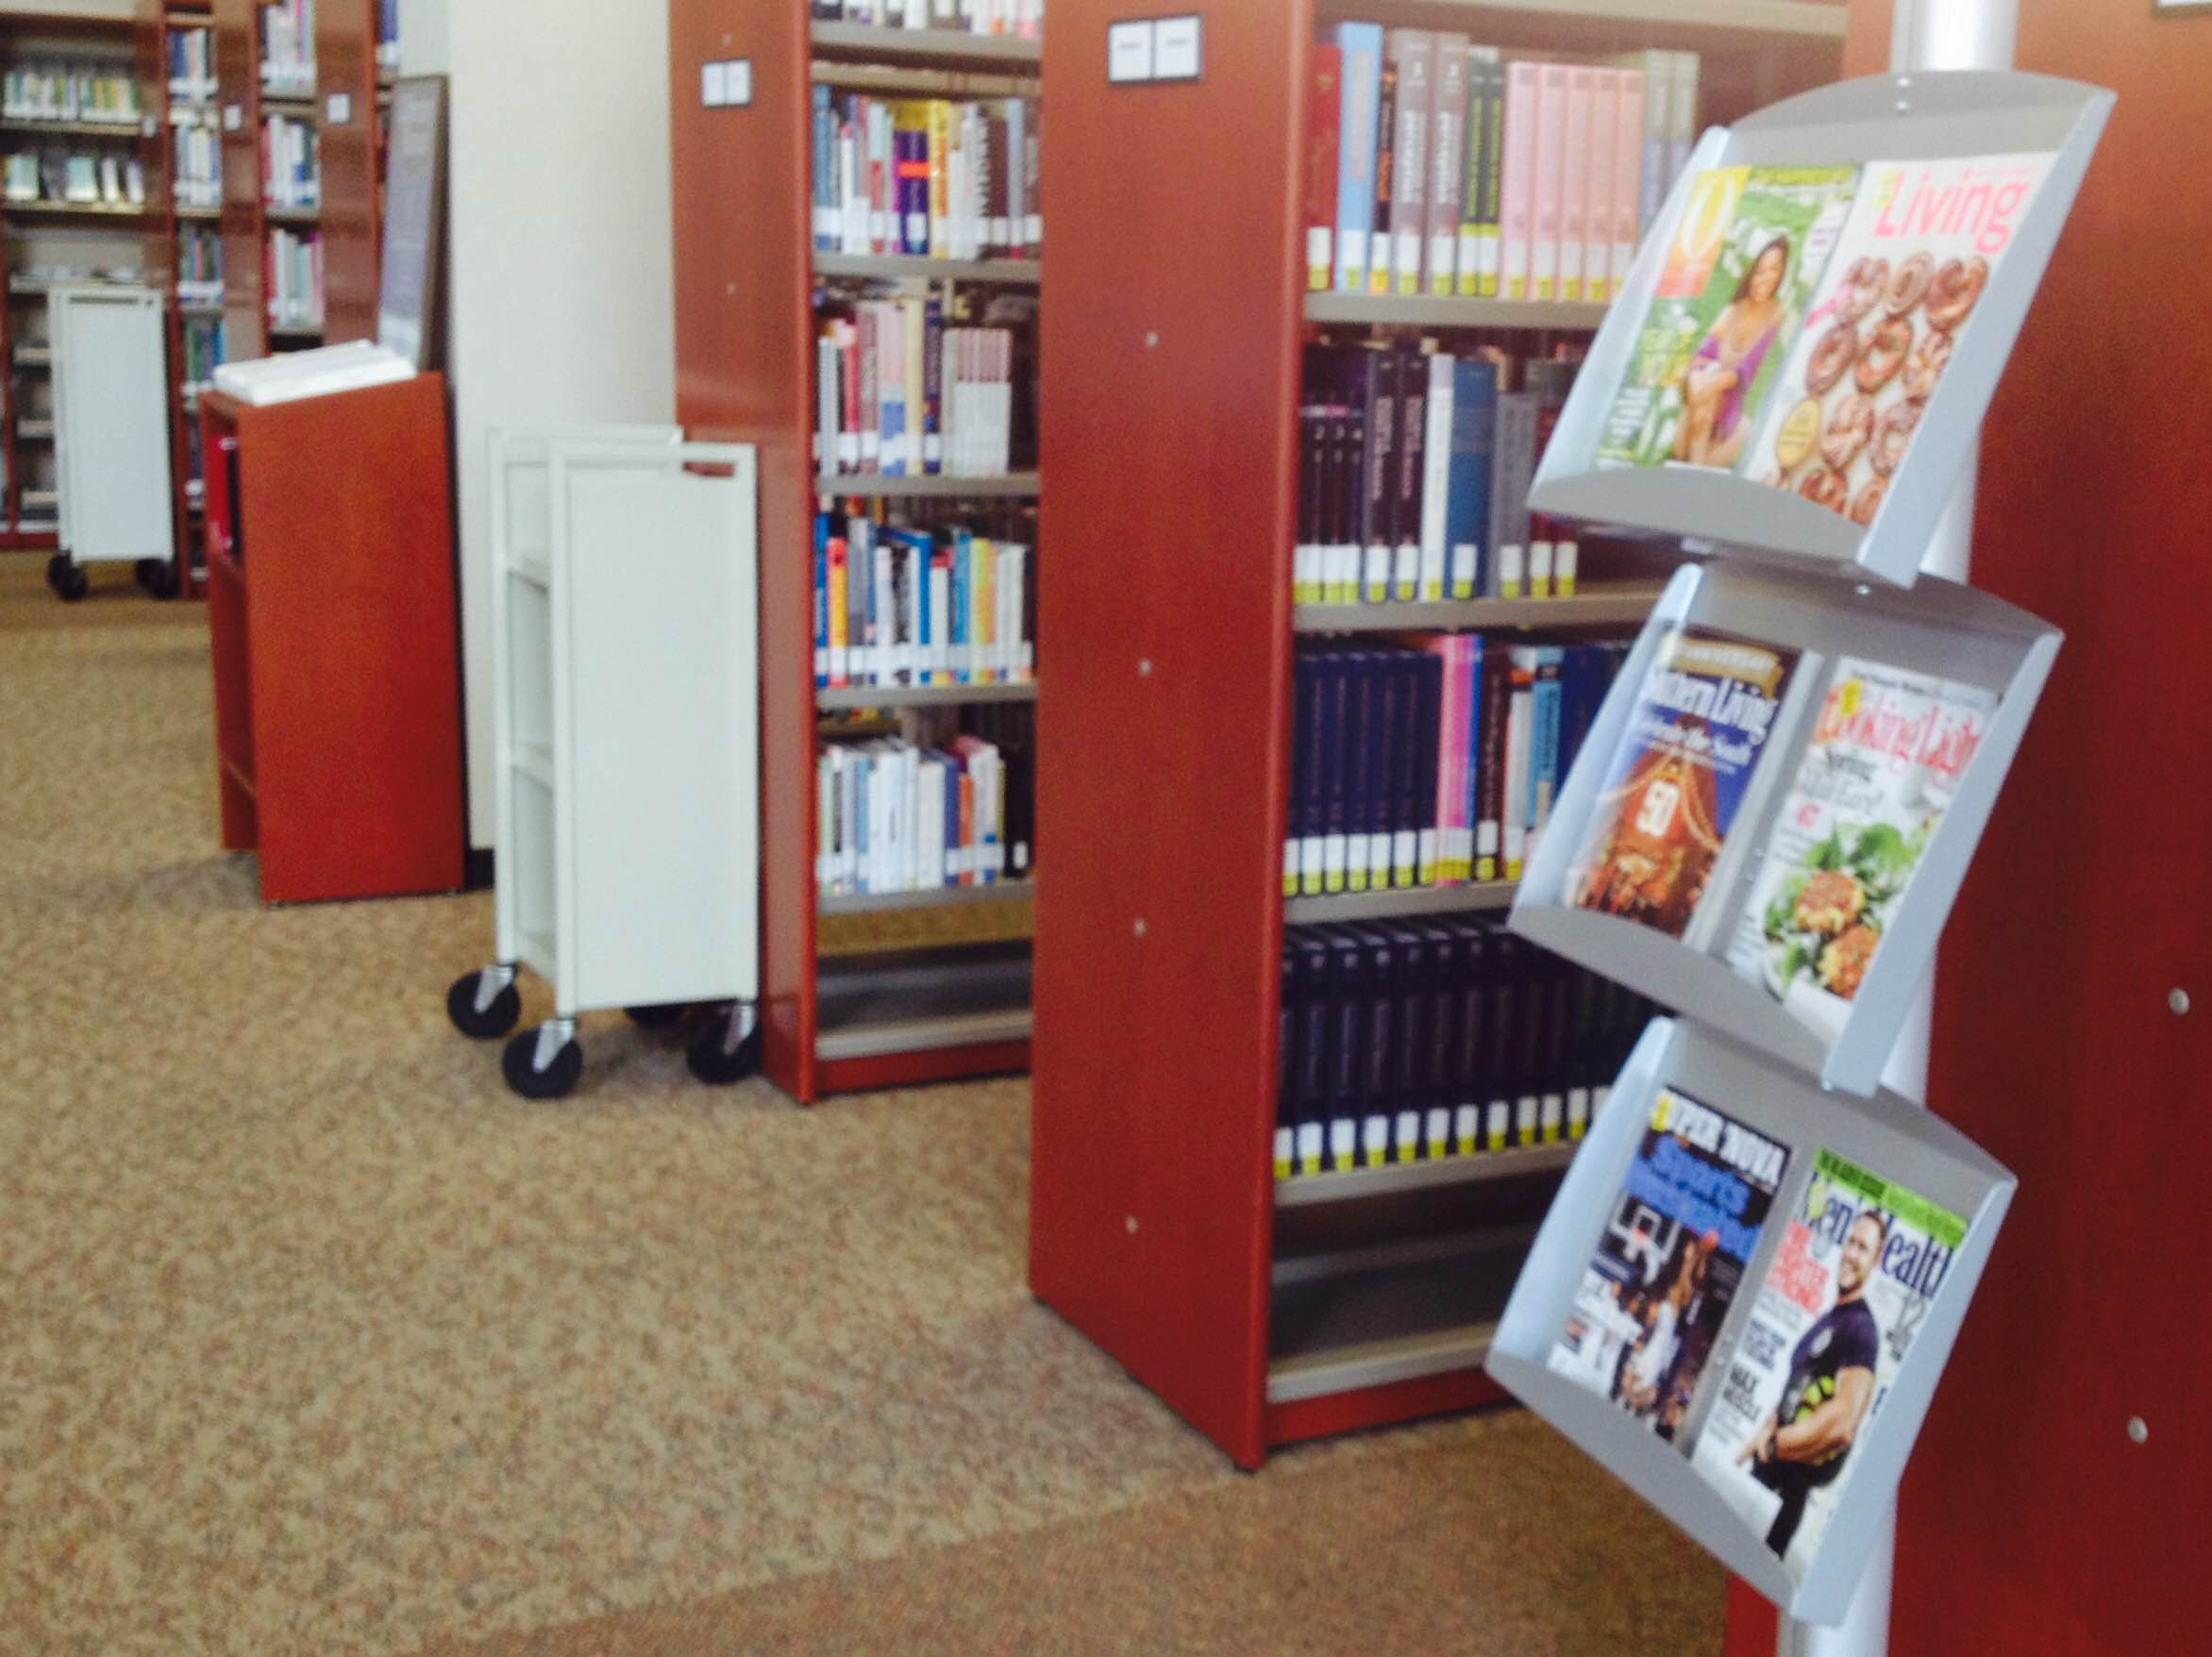 Image photo of book shelves in Waycross library